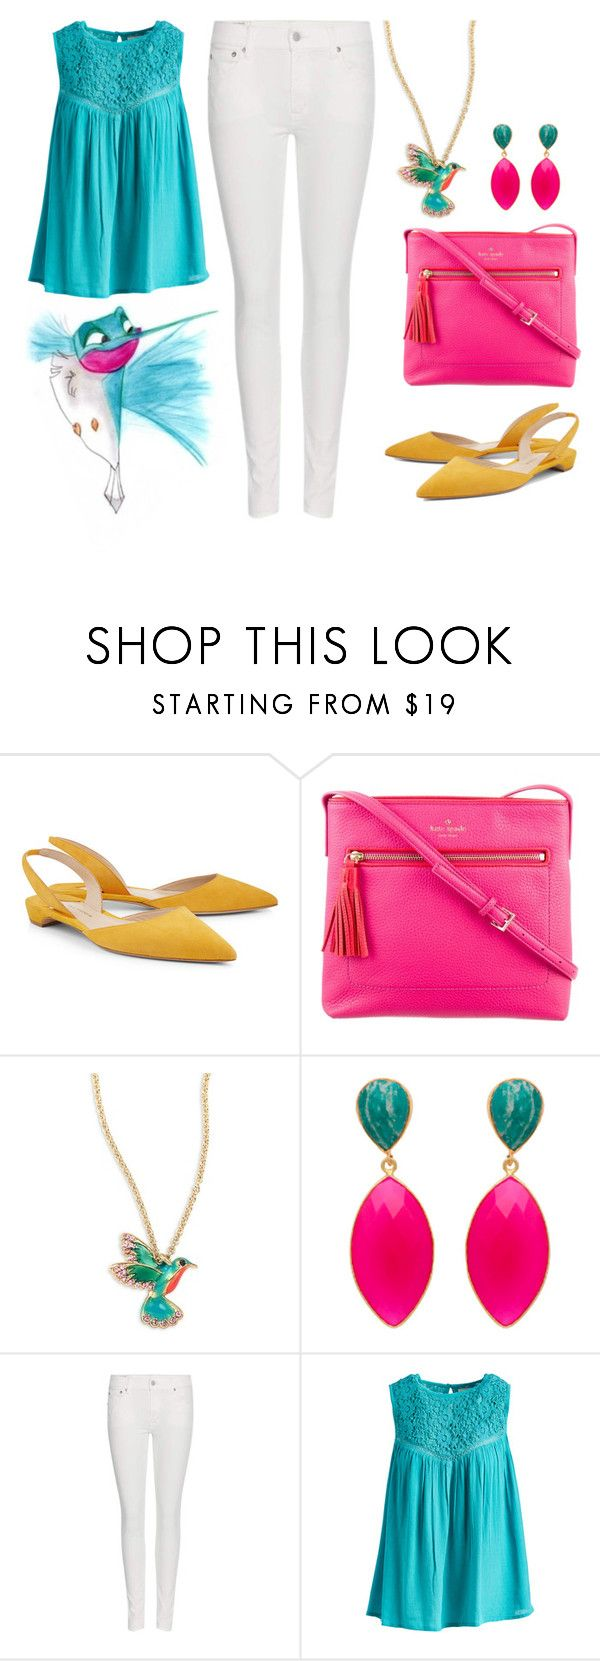 """Flit"" by aimee716 on Polyvore featuring Paul Andrew, Kate Spade, Polo Ralph Lauren, Jennifer & Grace, pocahontas, Flit and disneybounding"